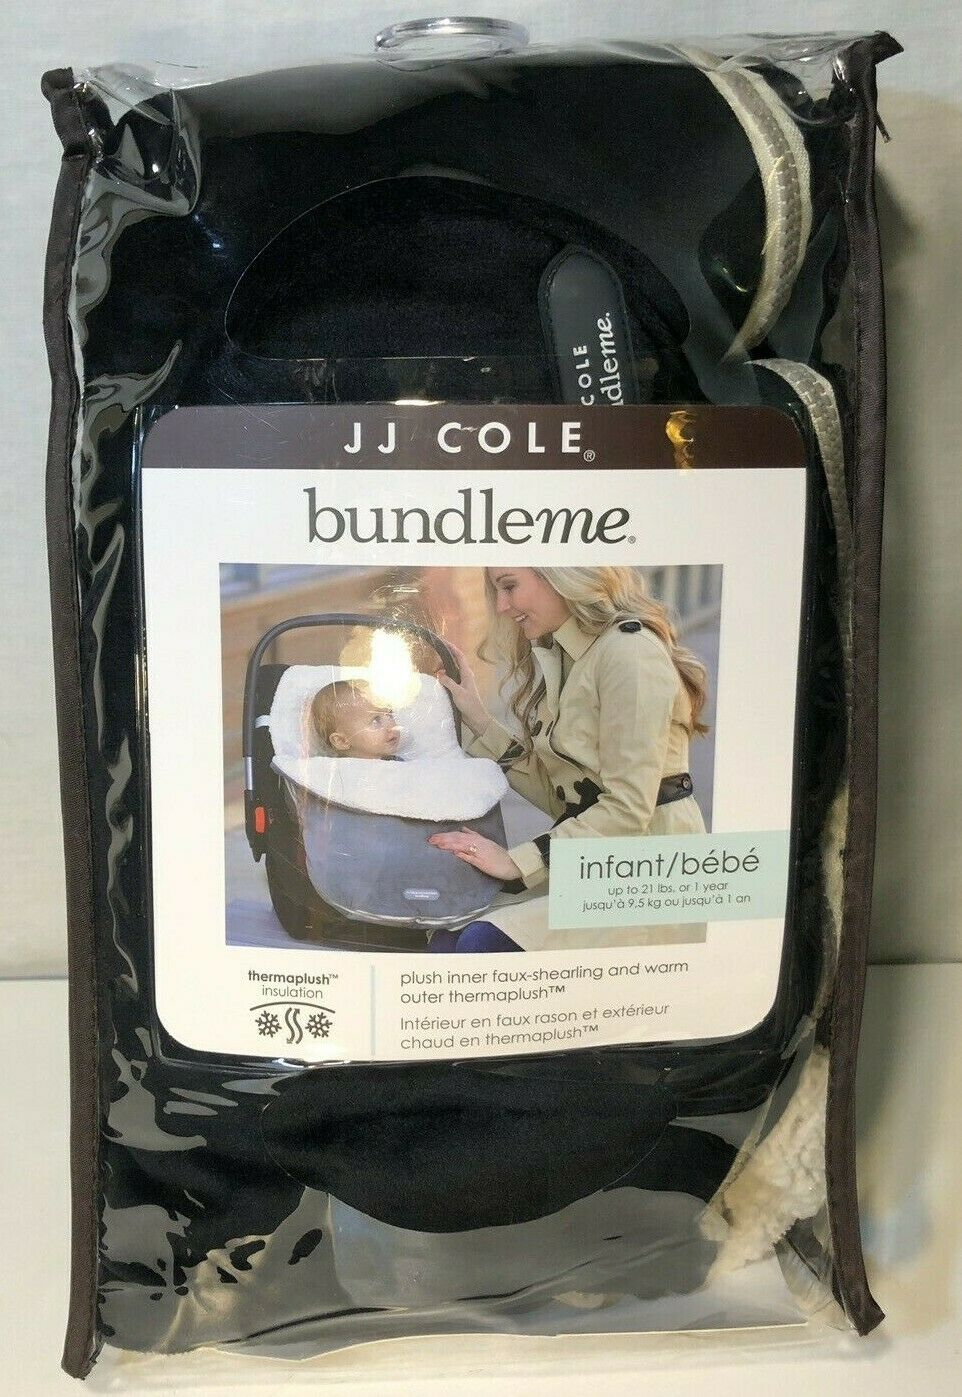 JJ Cole Original Bundle Me - Black